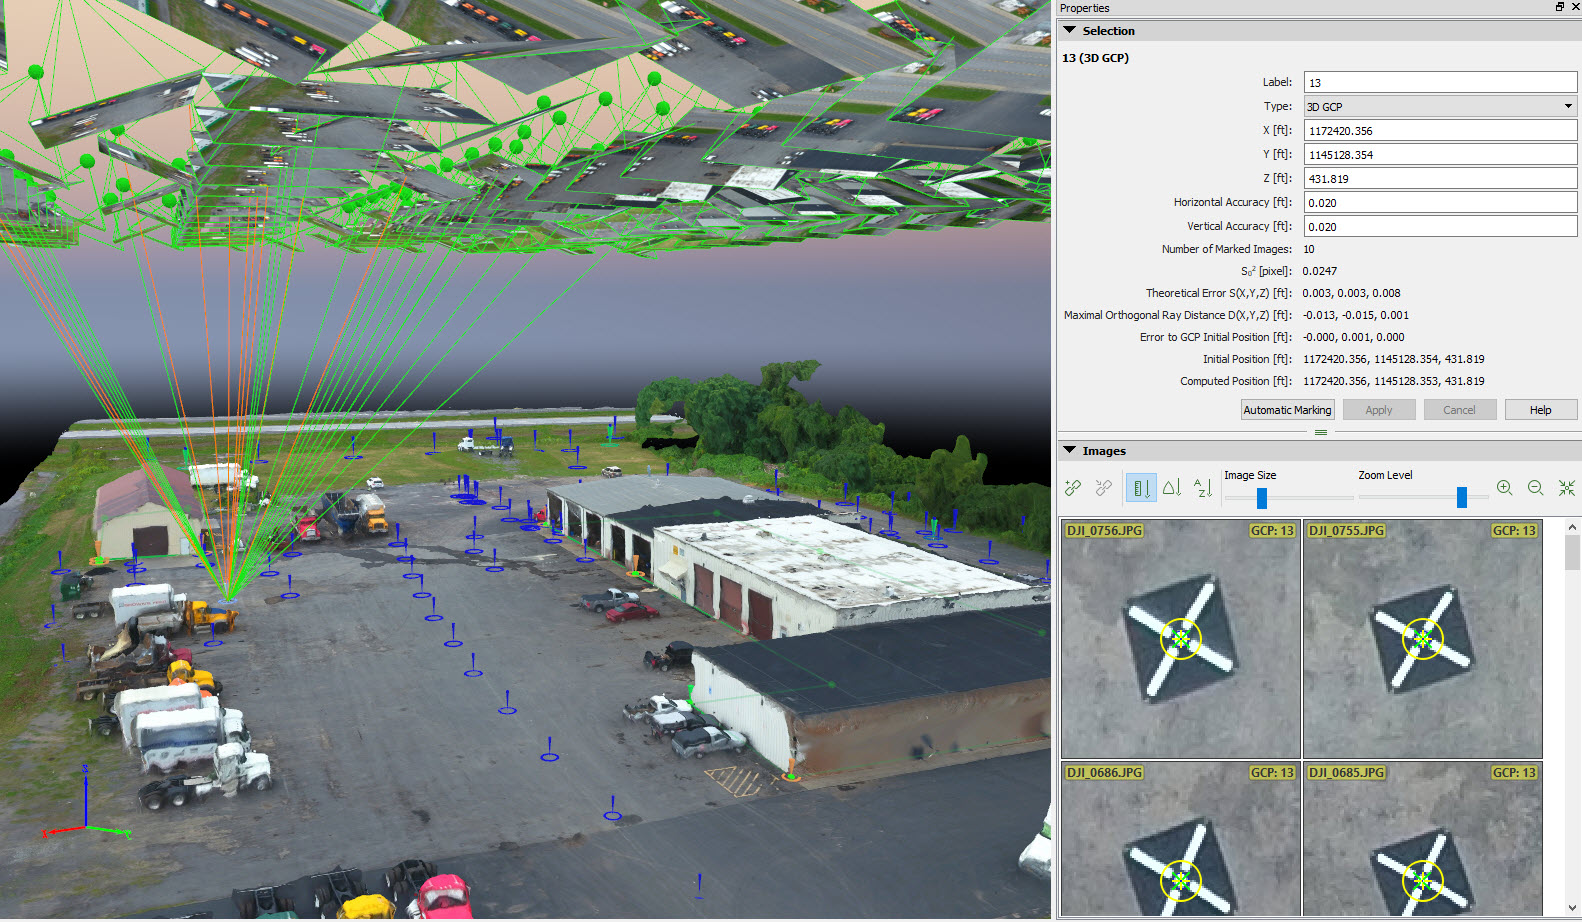 sUAS (Drone) Aerial Imagery – Lee Green Consulting LLC